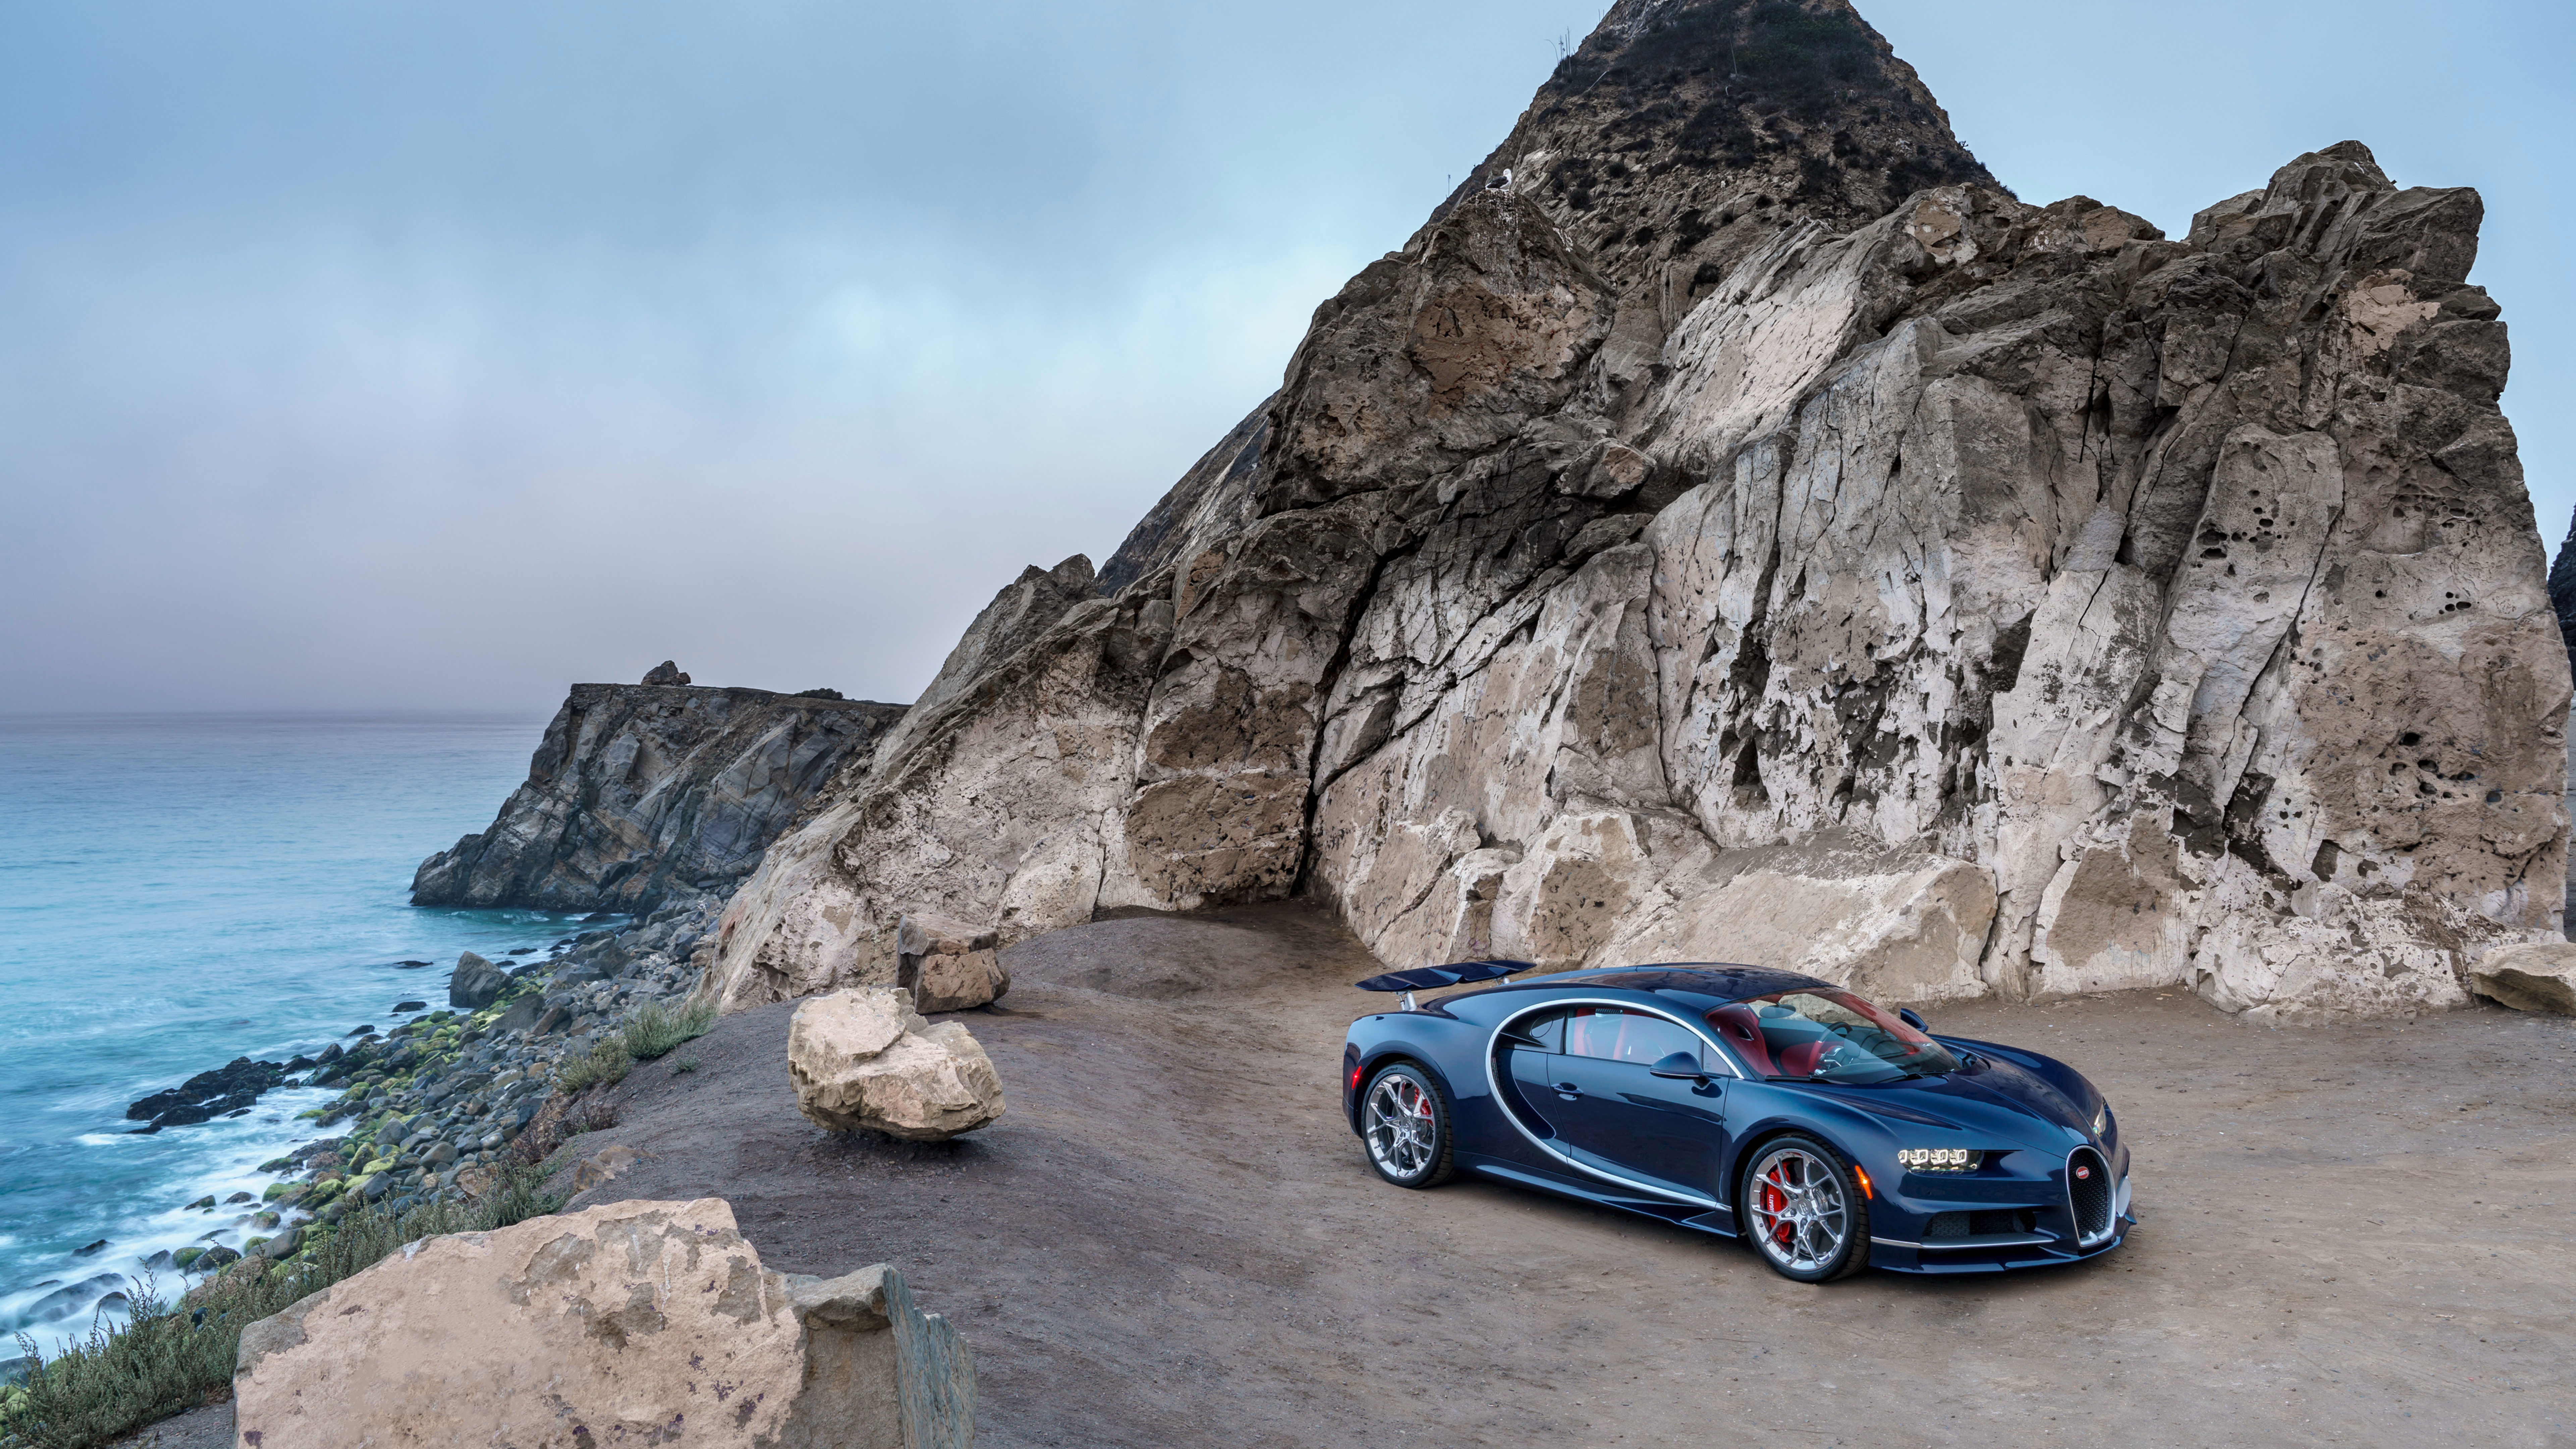 7680x4320 Bugatti Chiron Blue 8k Wallpaper Hd Cars 4k Wallpapers Images Photos And Background